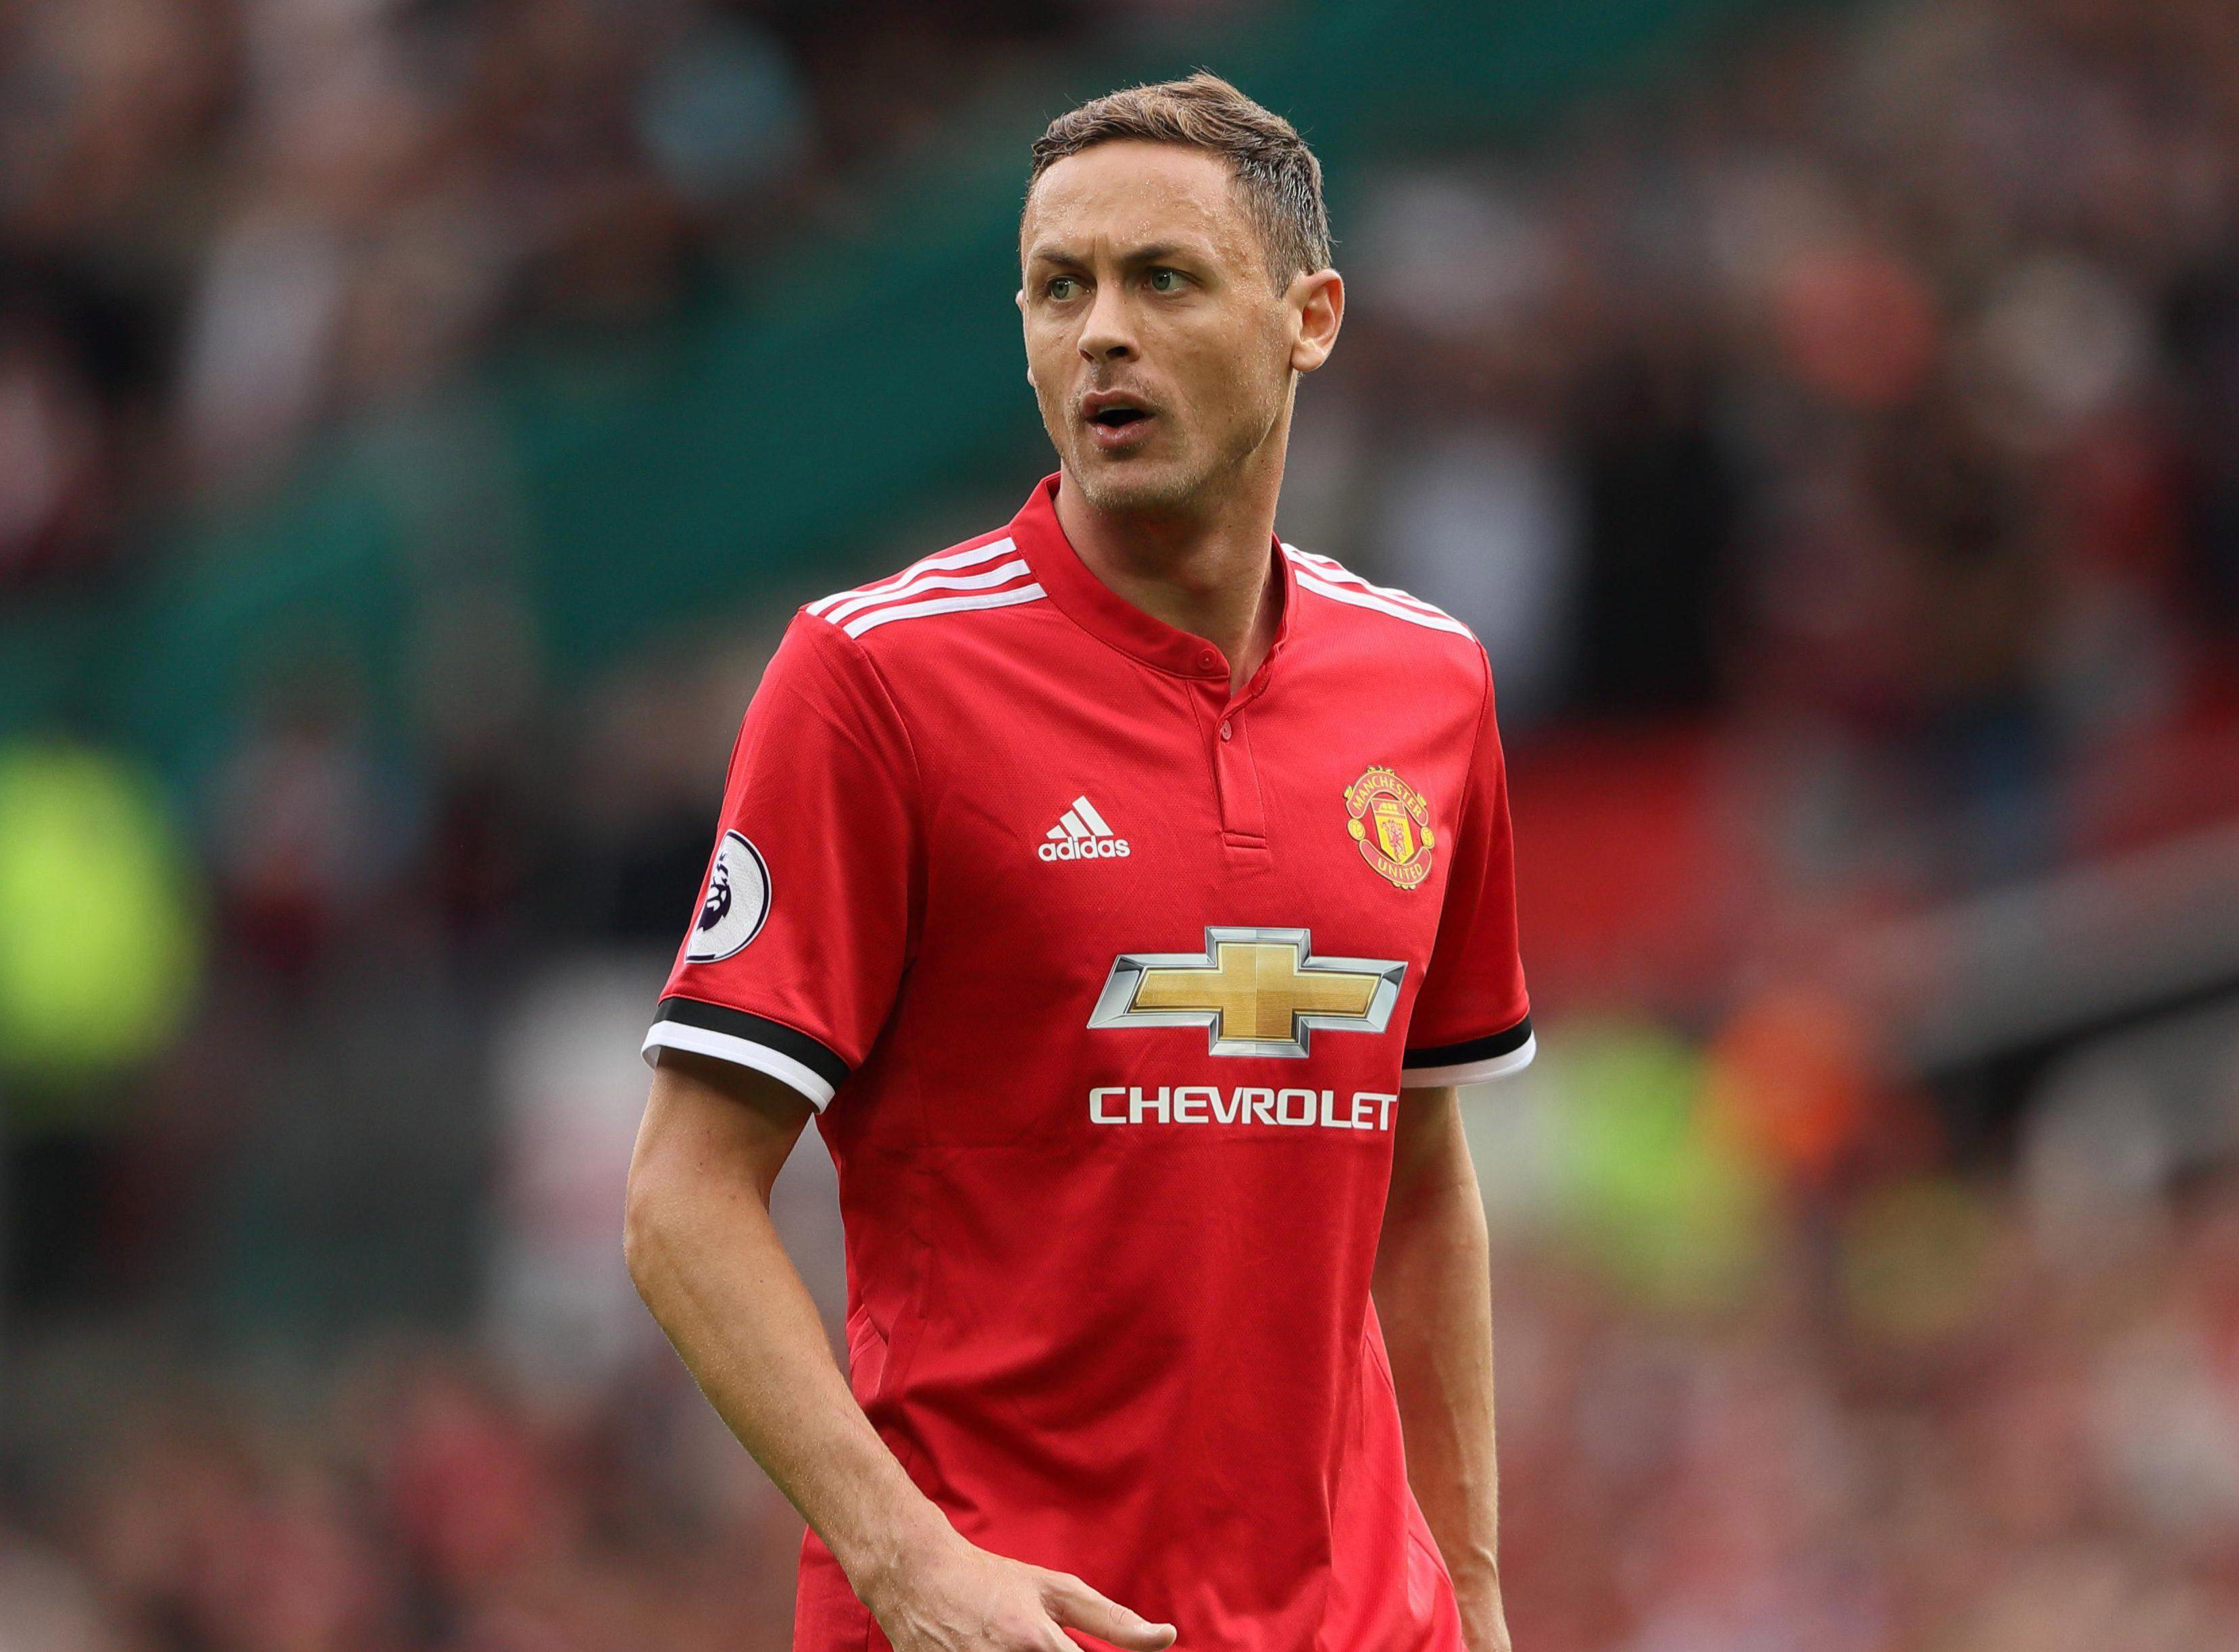 Matic joined Manchester United for a fee of £40m